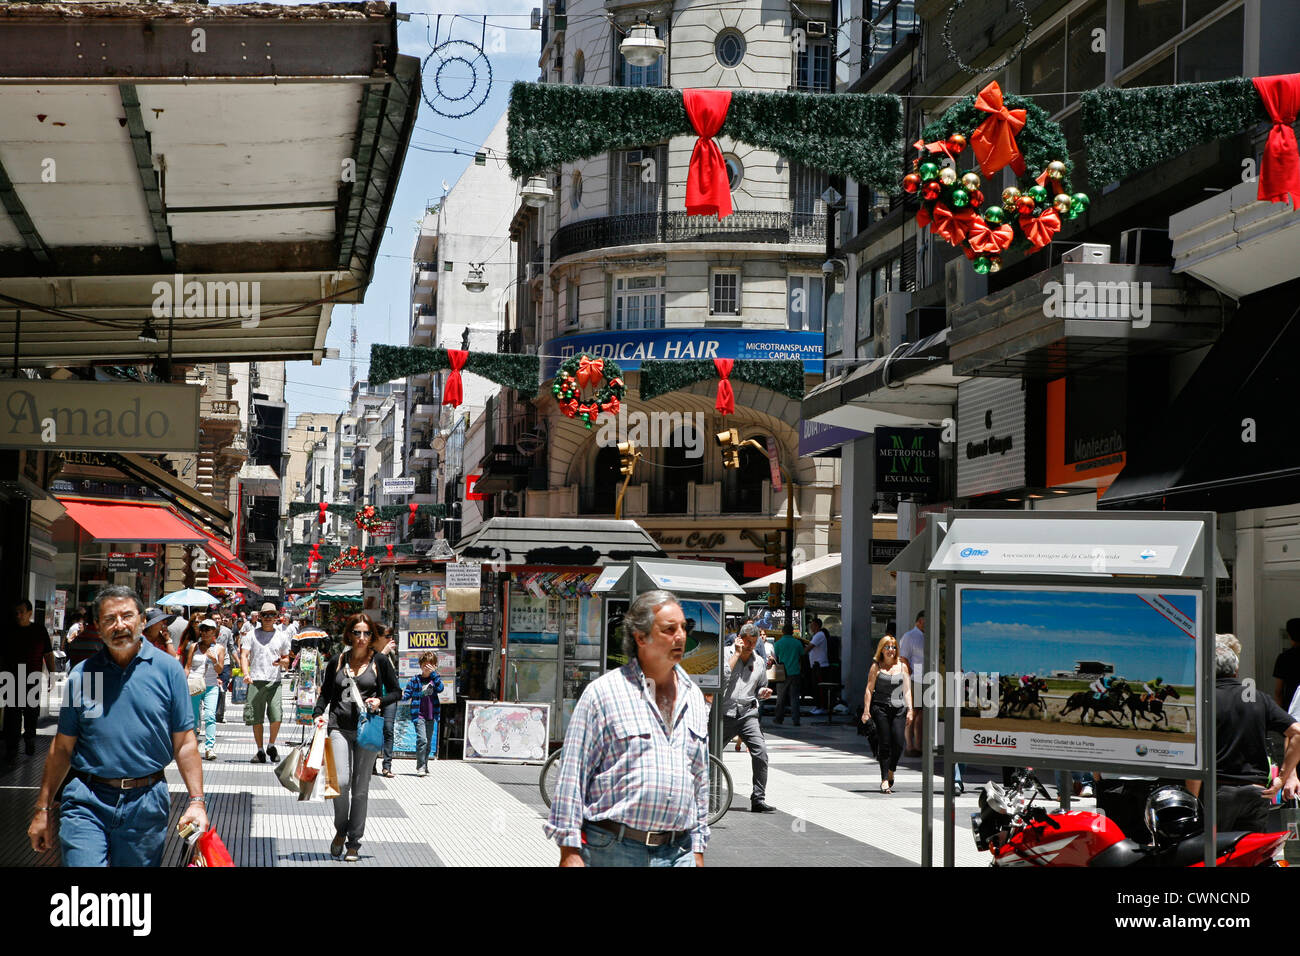 View over Florida Street the main pedestrian street in Buenos Aires, Argentina. - Stock Image